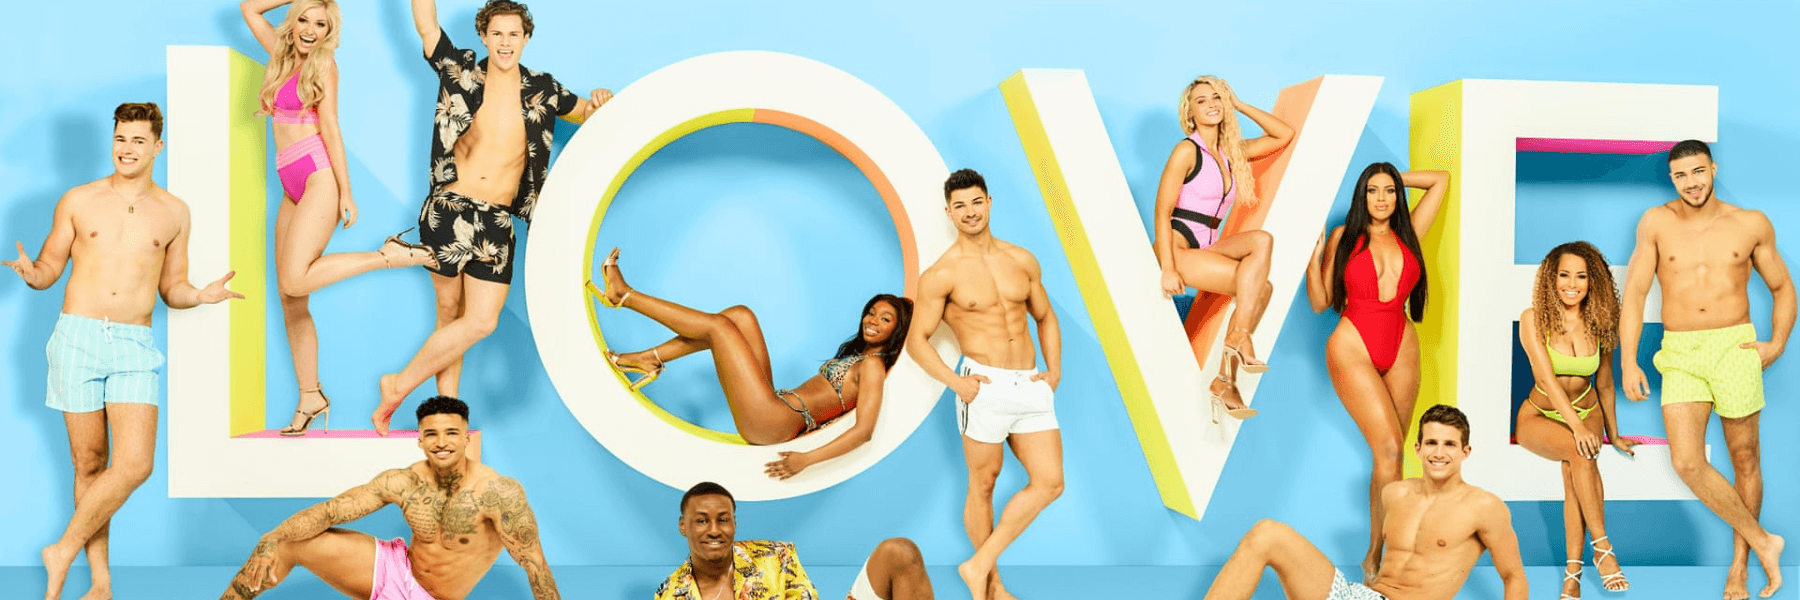 Three Reasons Why I Won't be Recoupling With Love Island